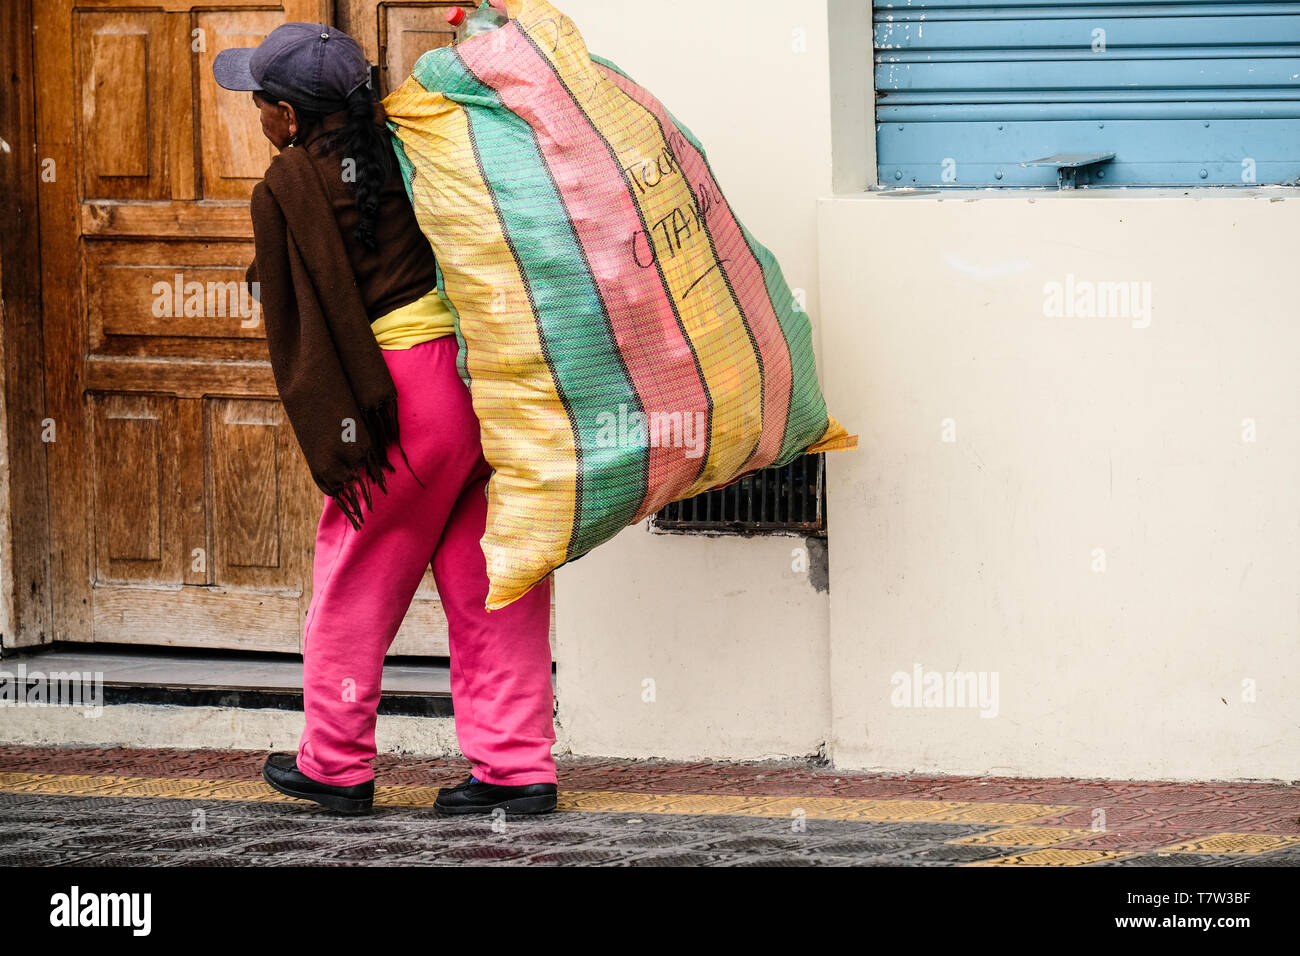 An old indigenous woman carrying a big heavy bag on her back at Octaval Market in Ecuador - Stock Image